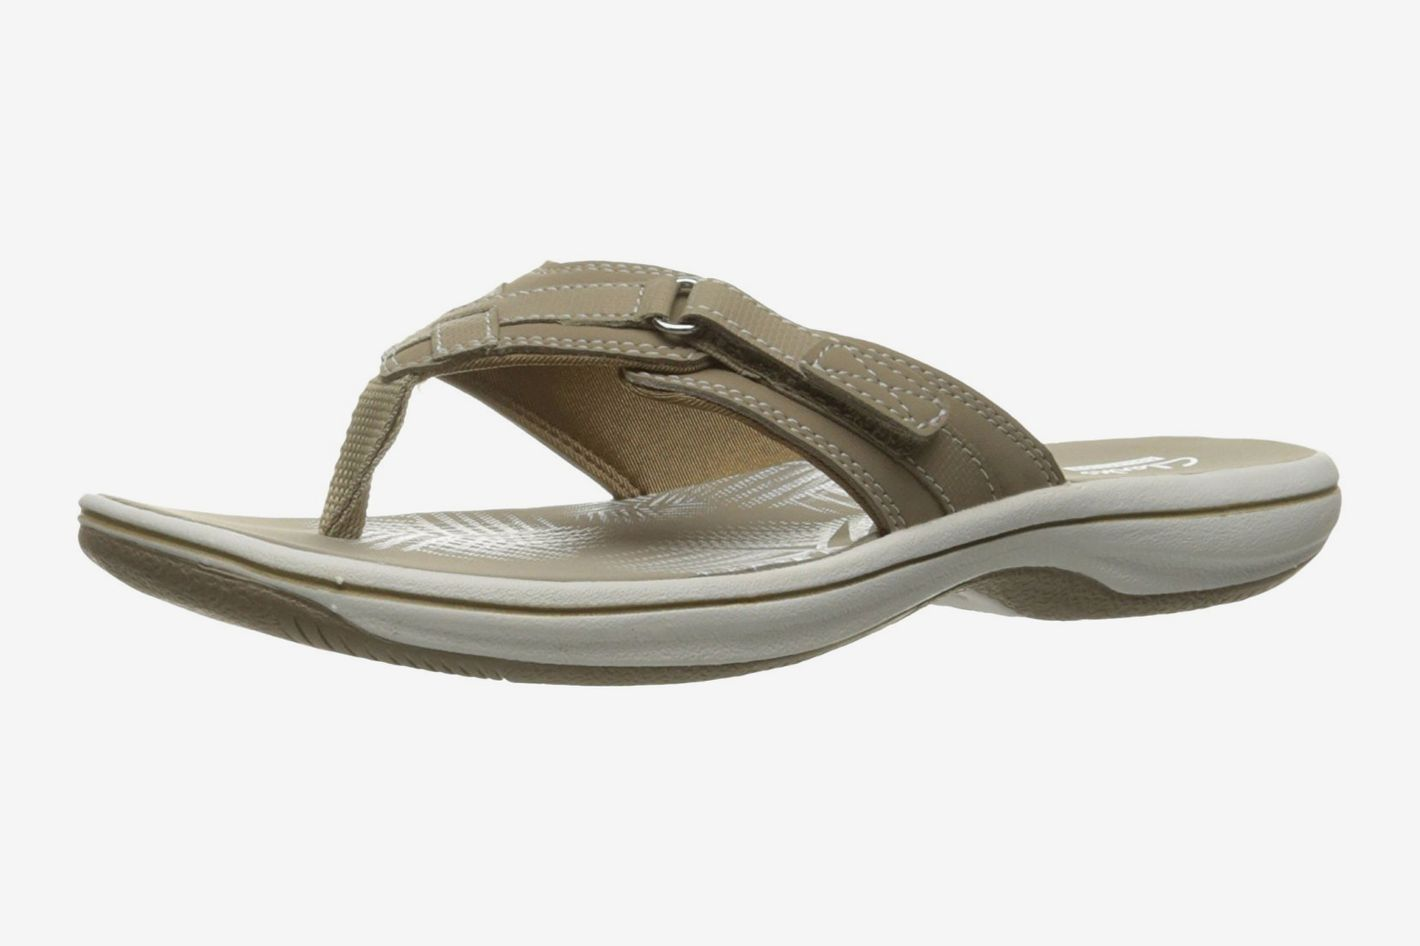 ad2bf80d9d45 11 Best Women s Sandals 2018 — Flip-flops